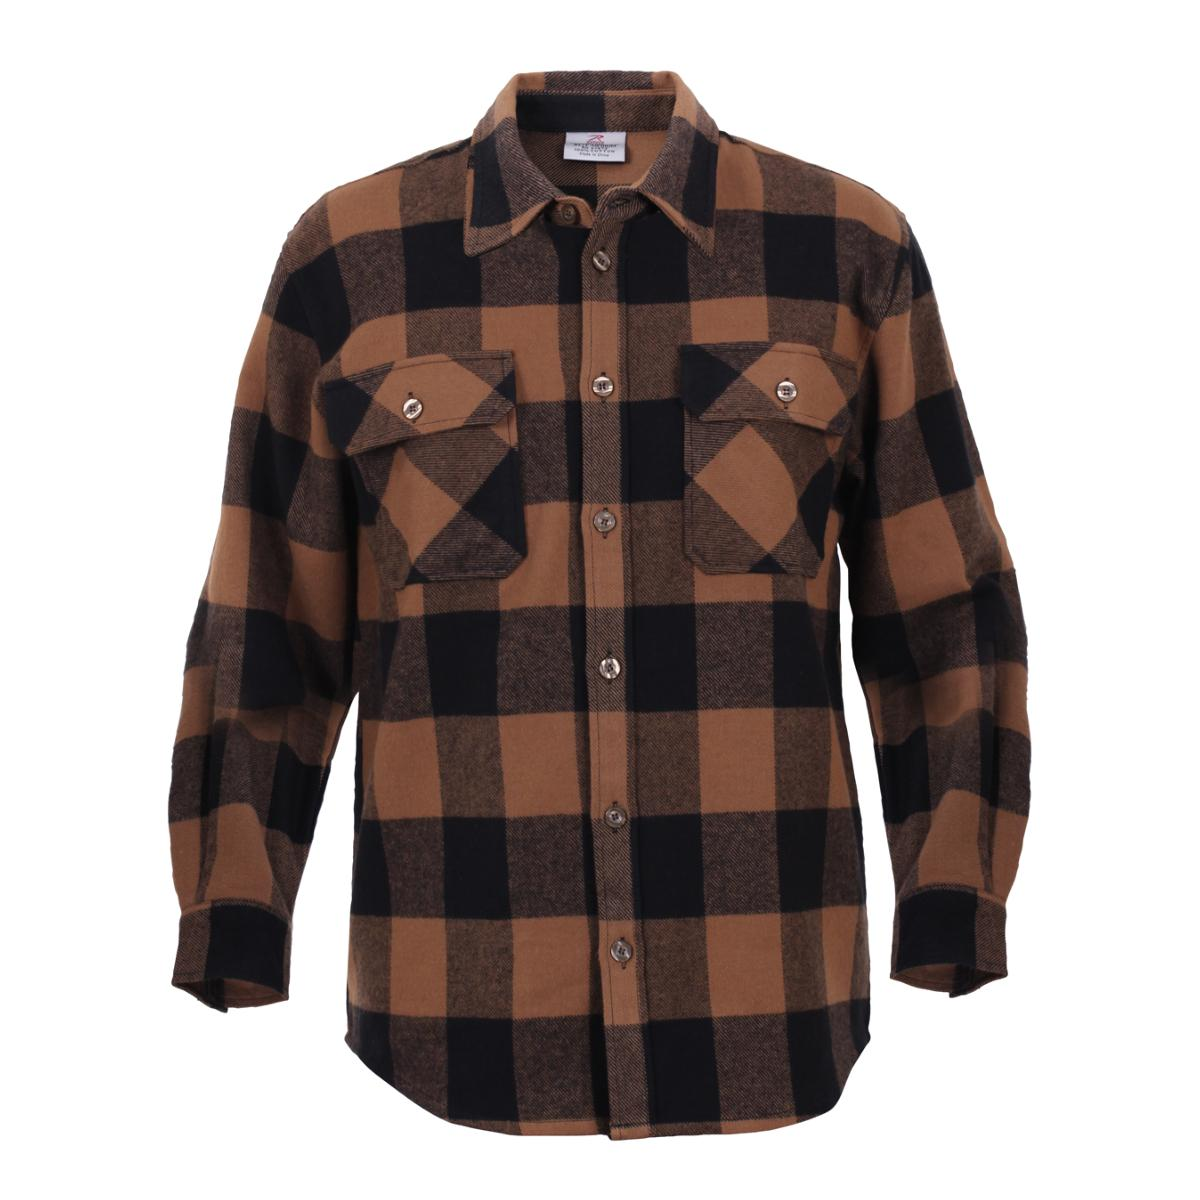 Faded glory men 39 s long sleeve flannel shirt for Men s lightweight flannel shirts